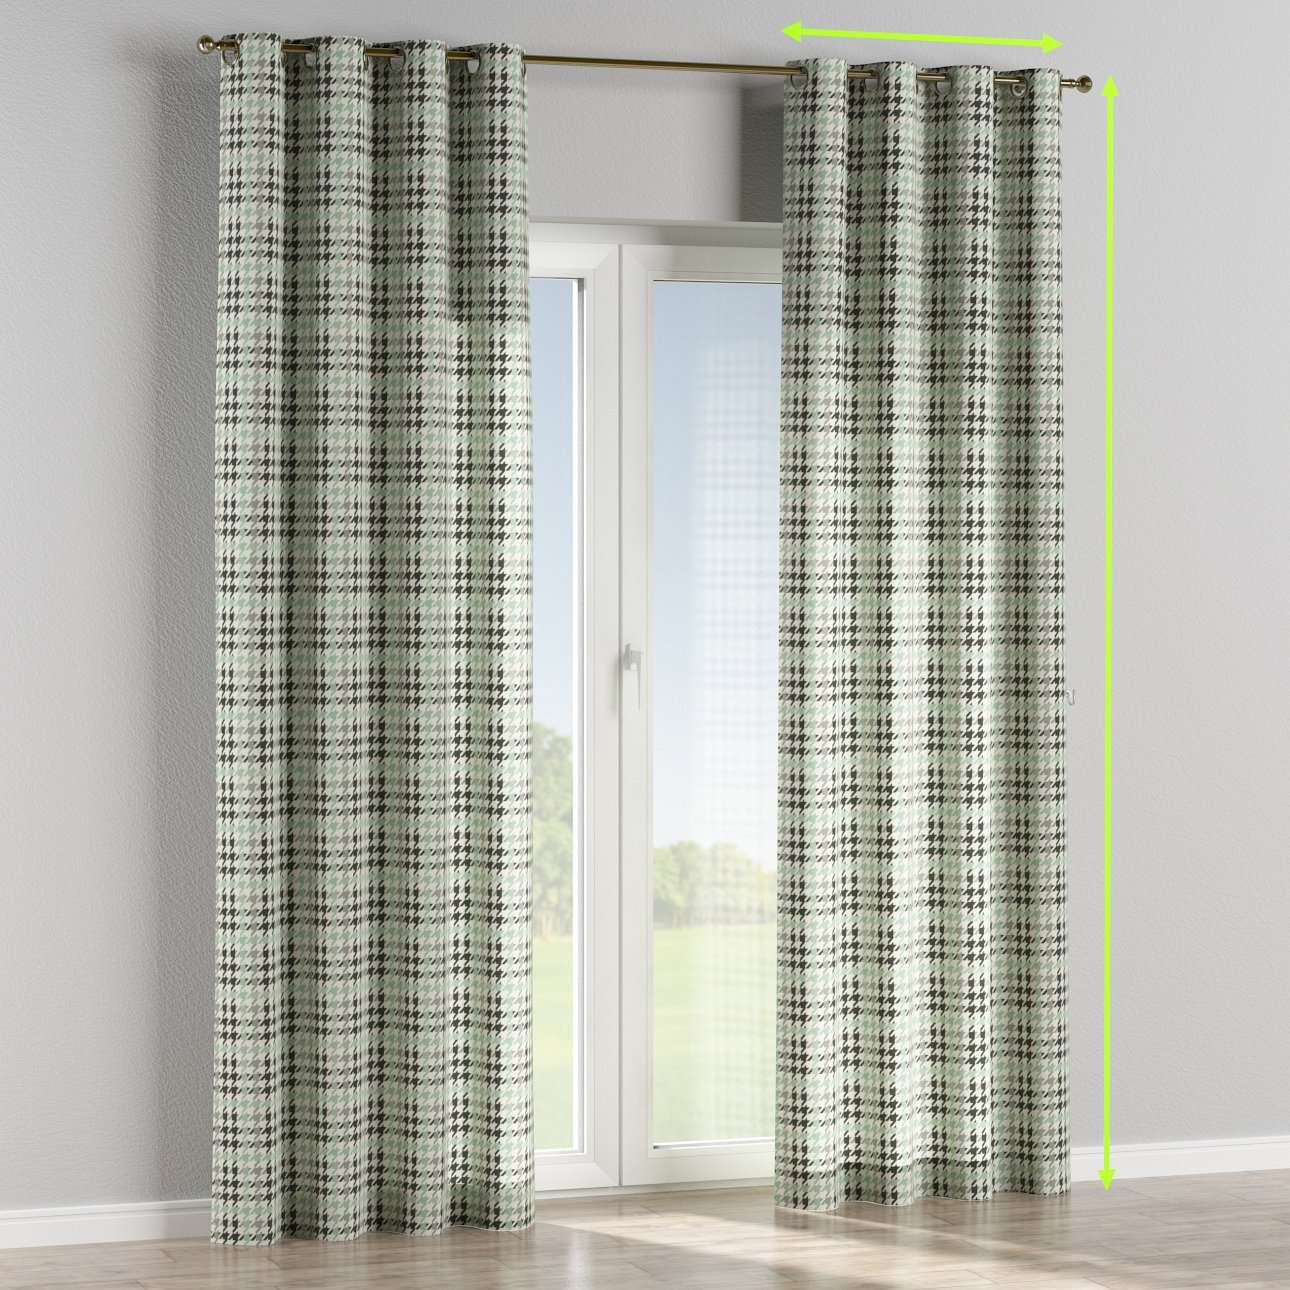 Eyelet curtains in collection Brooklyn, fabric: 137-77